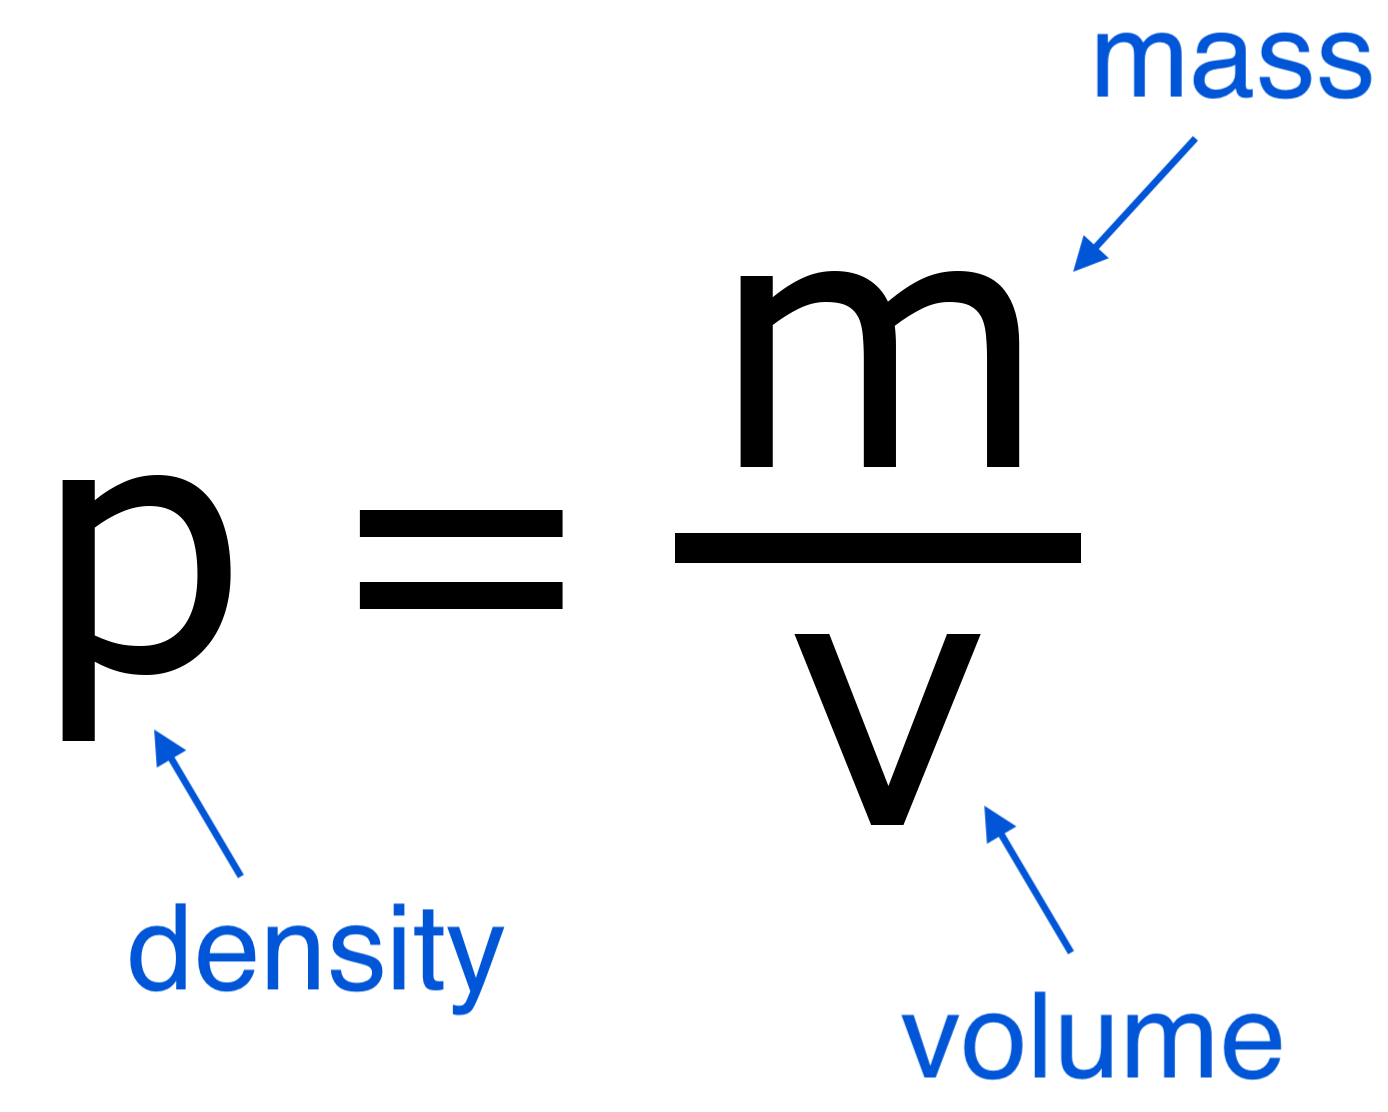 Illustration showing the formula to solve density is mass divided by volume.